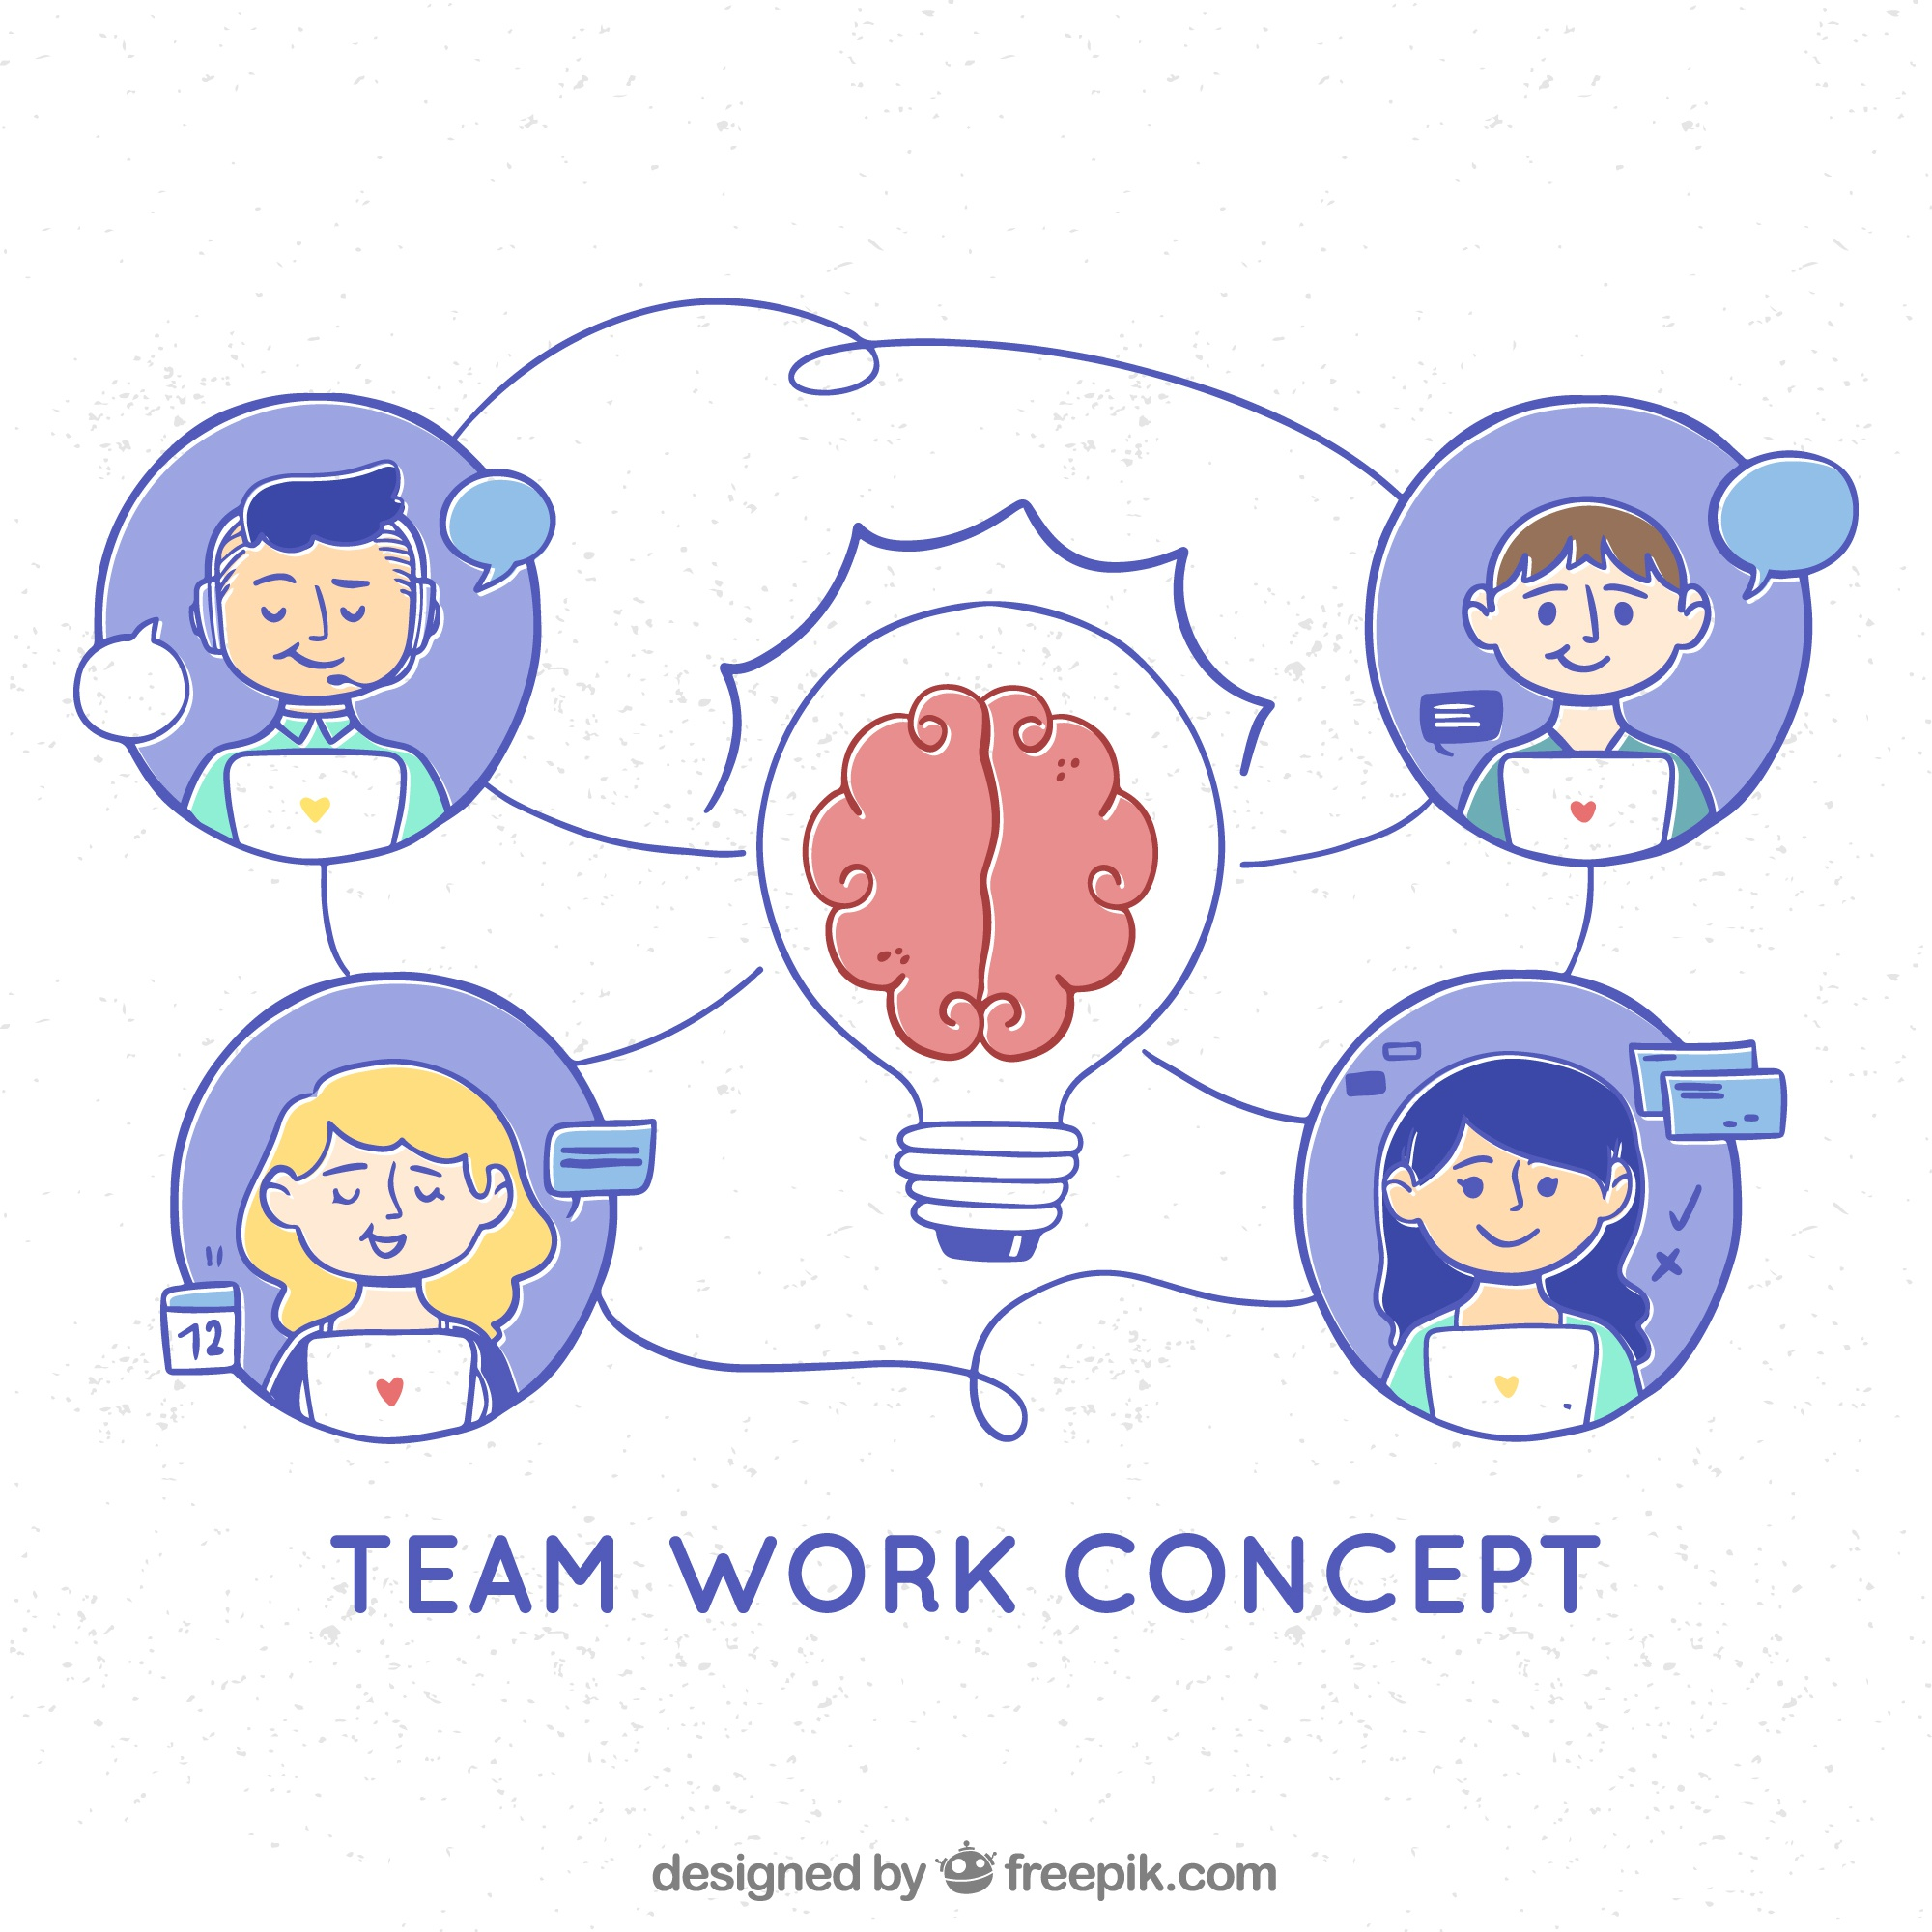 Teamwork concept with hand drawn style